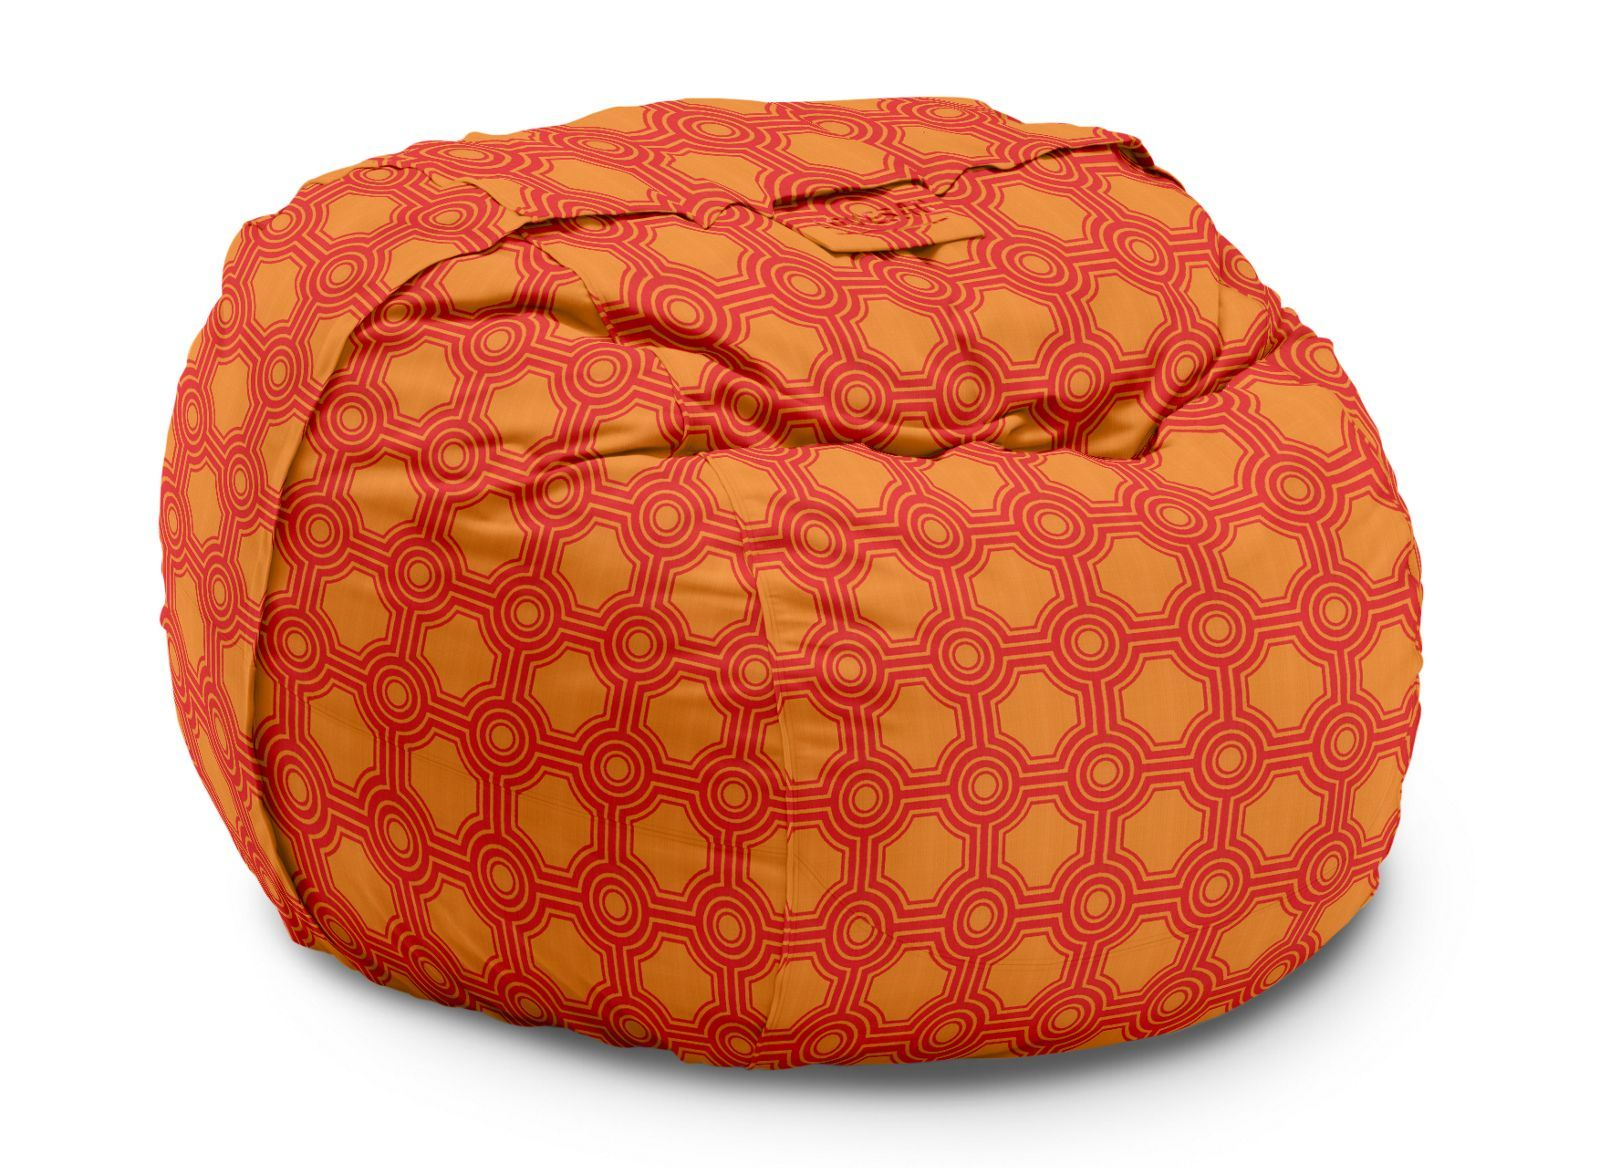 Bigone Annabelle Bean Bag Chair Chair Bean Bag